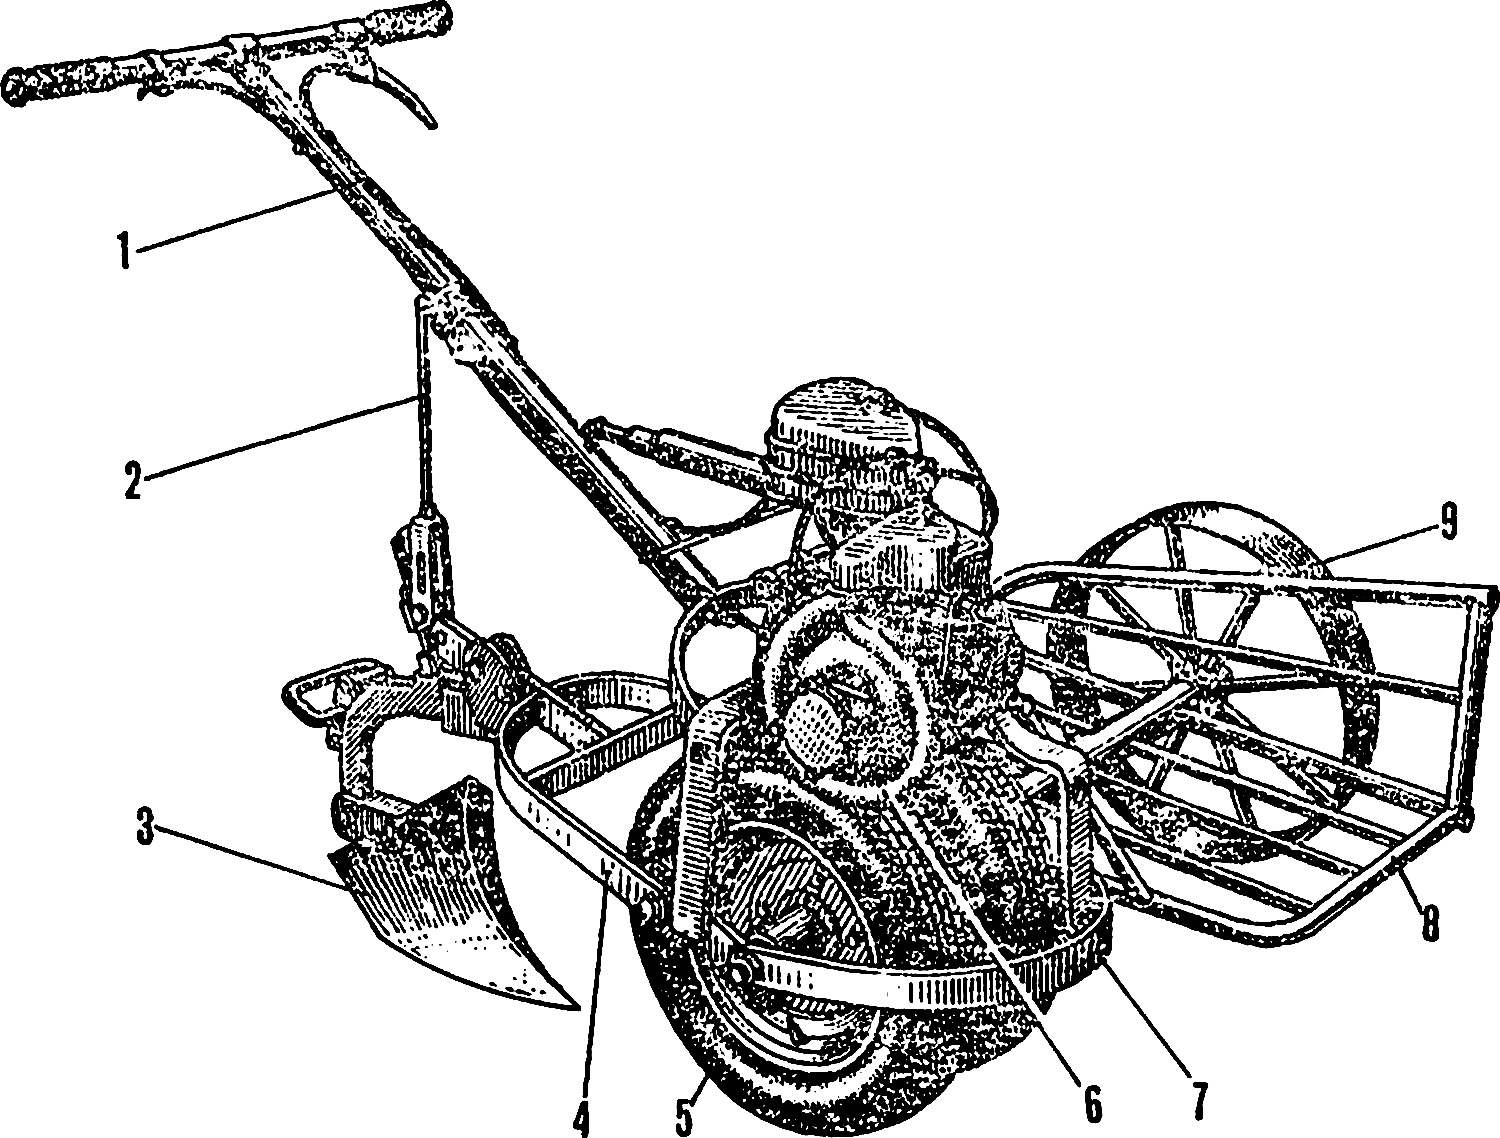 Fig. 8. The tow plow.